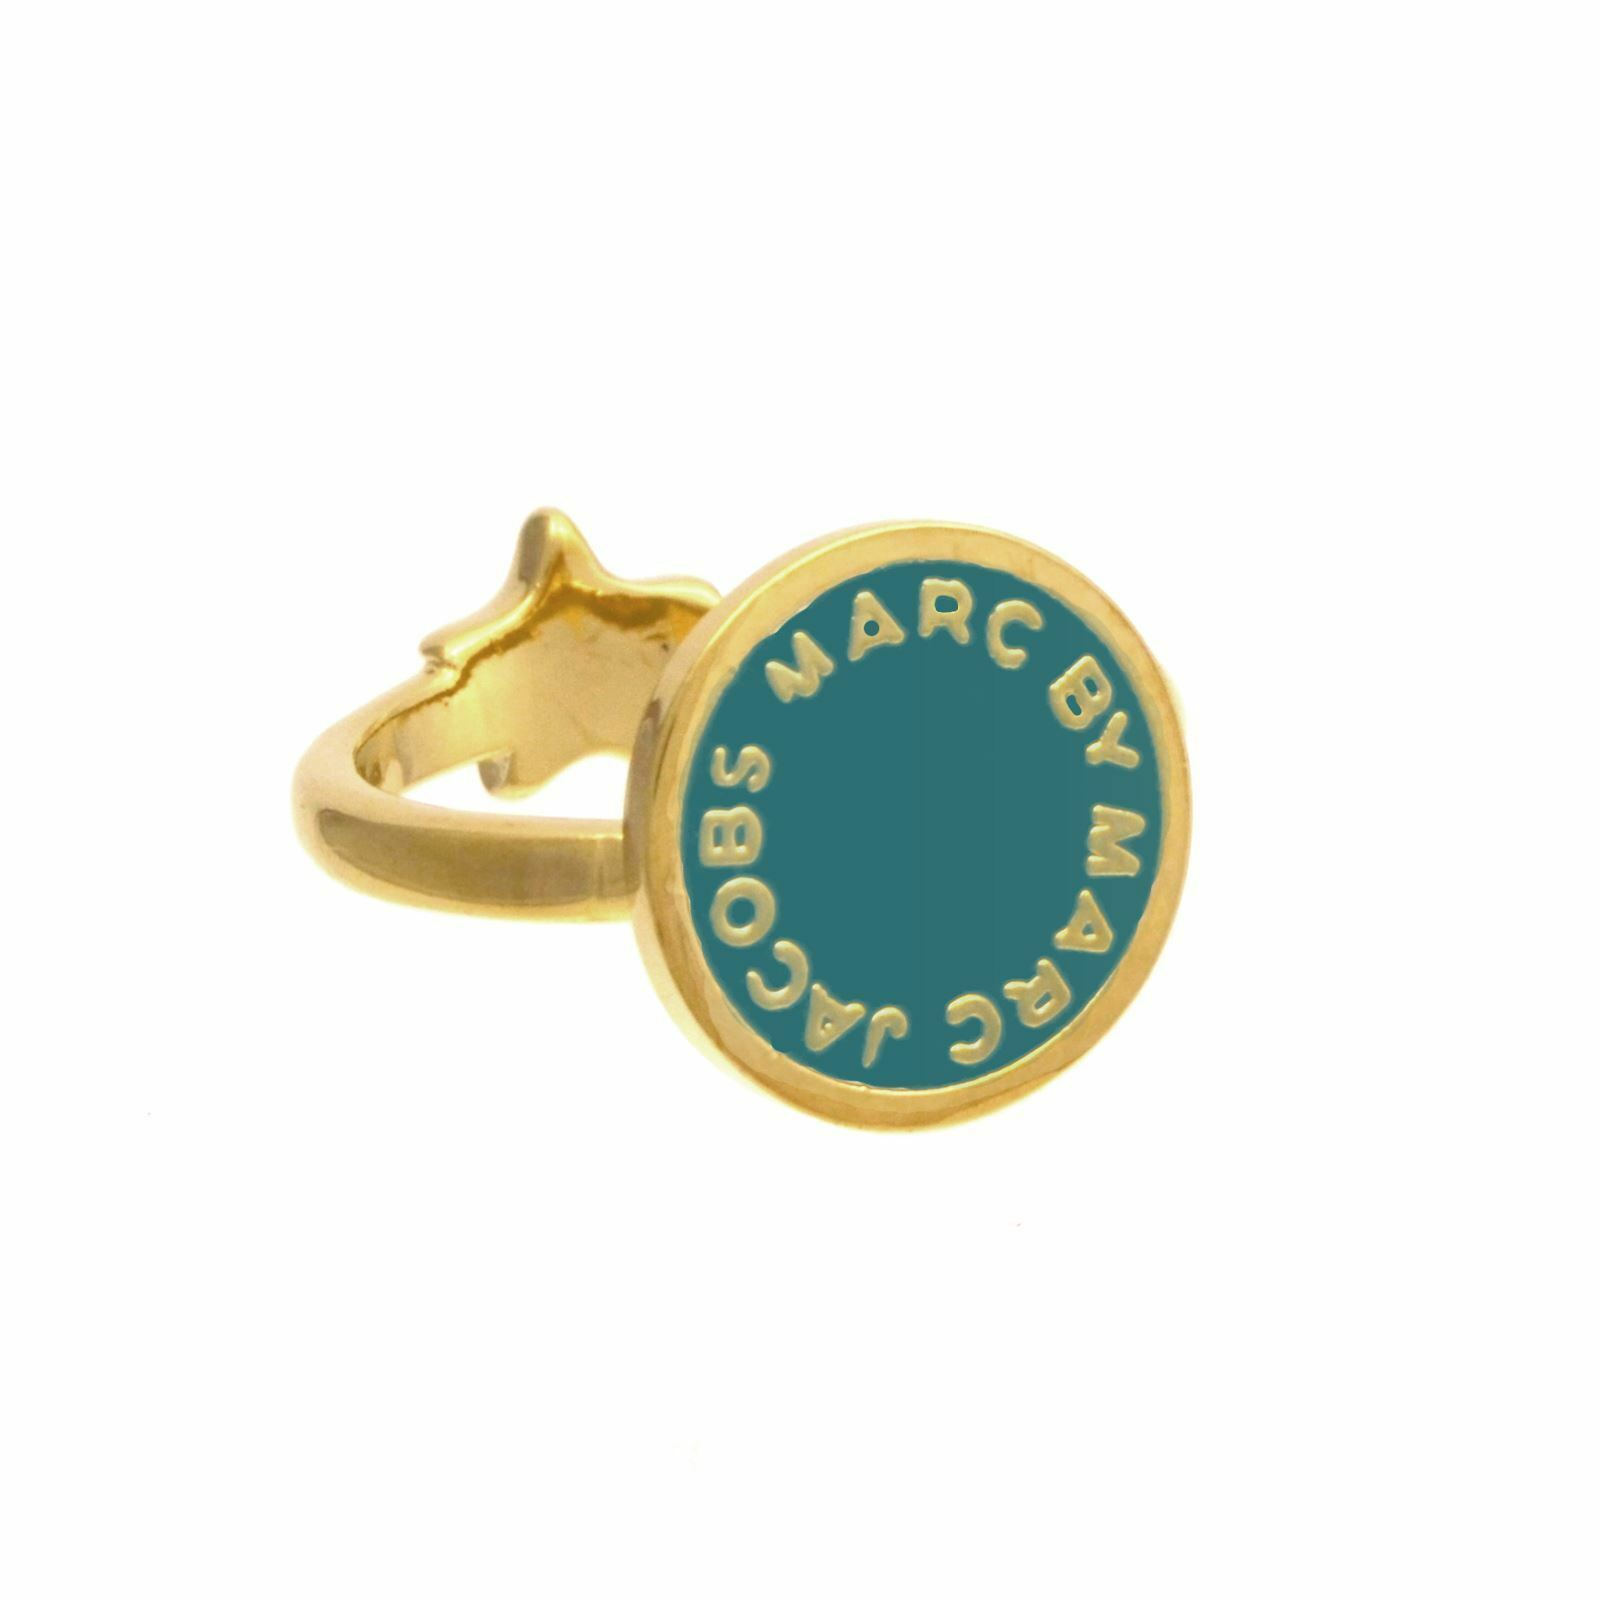 BNWT - Marc by Marc Jacobs-Starry Marc Disc Logo Double Ring (Small-16.5mm wide)